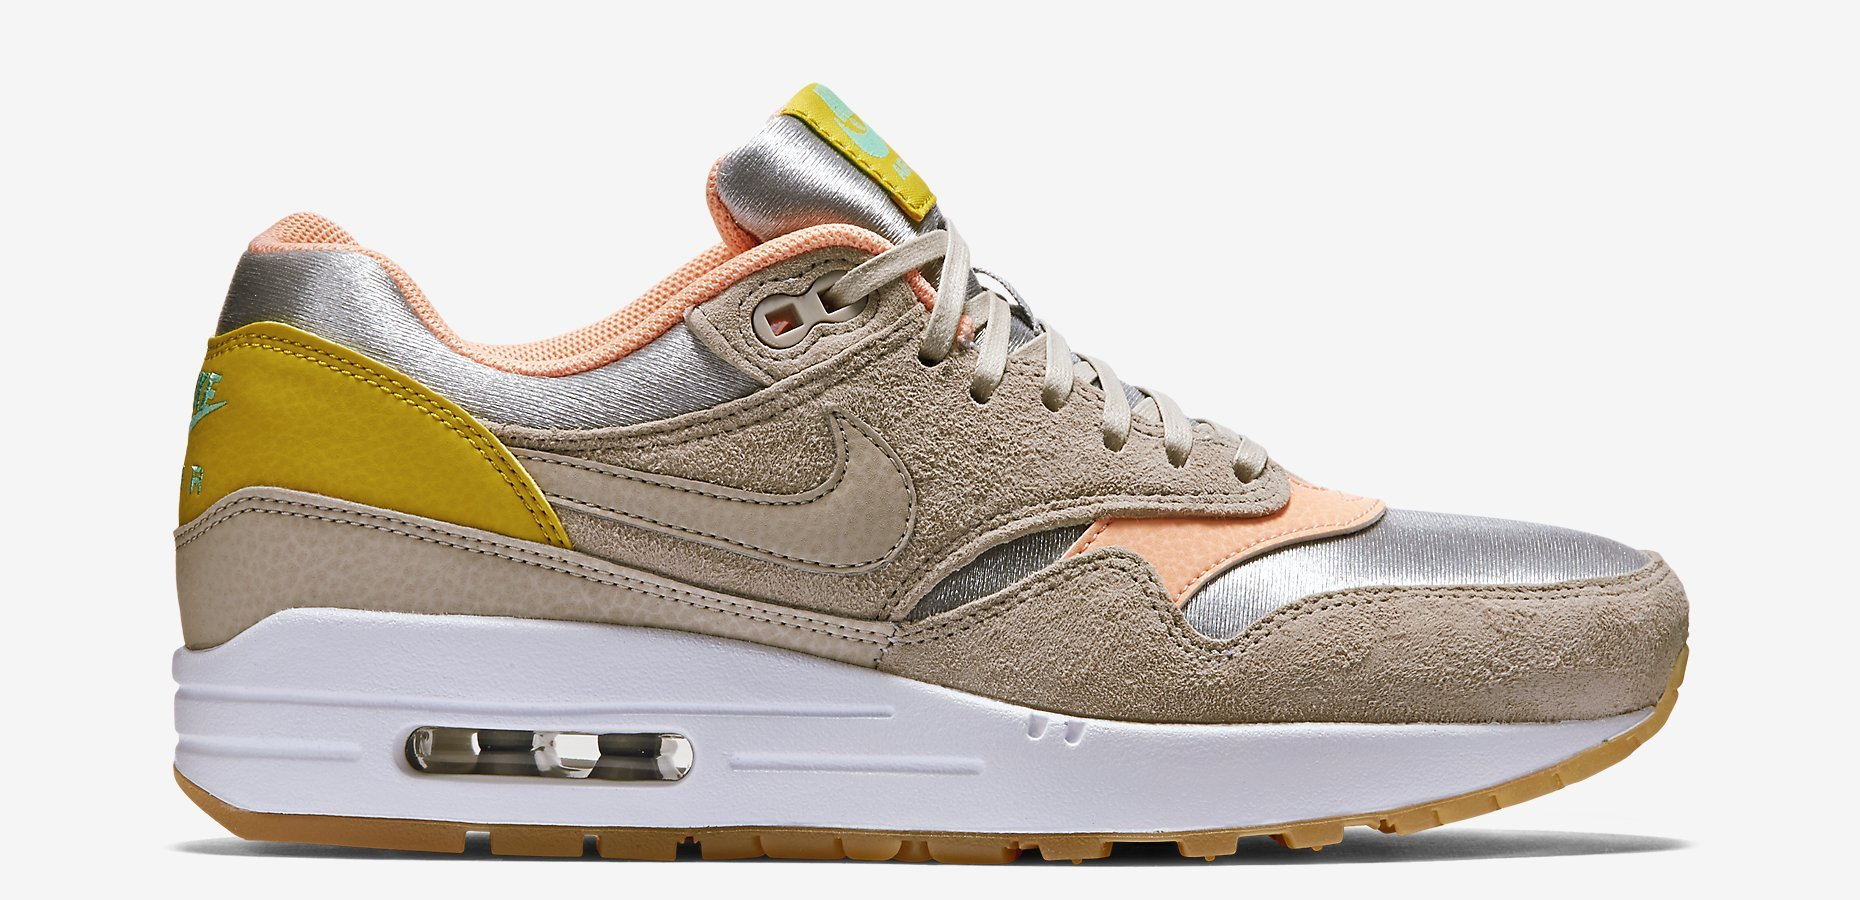 premium selection fbd16 6af93 Nike Womens Air Max 1 Premium Color  Metallic Silver Sunset Glow-Green Glow- String Style  454746-006. Price   120.00